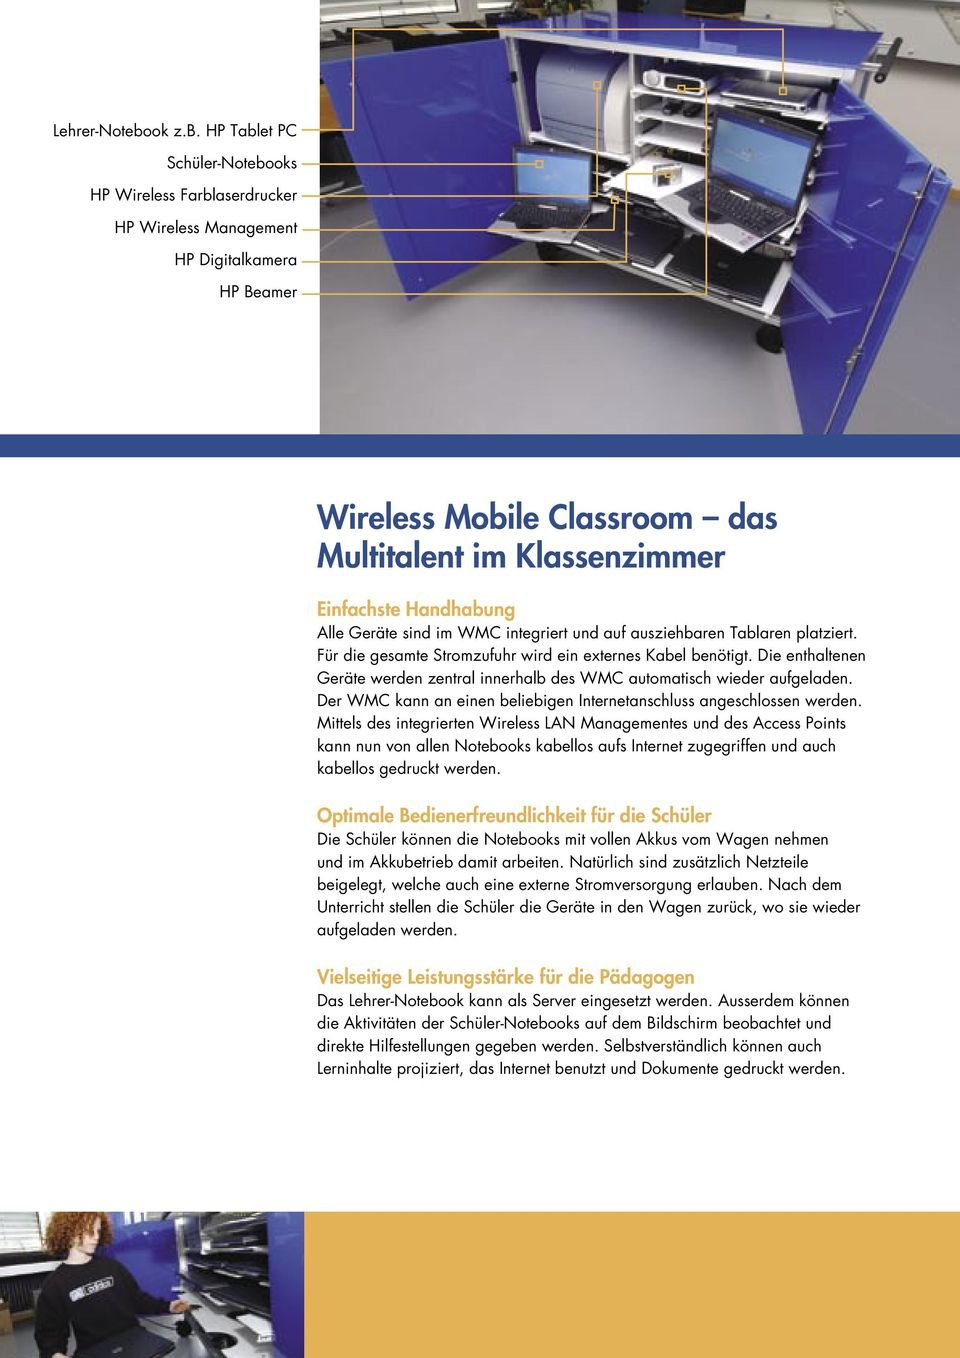 HP Tablet PC Schüler-Notebooks HP Wireless Farblaserdrucker HP Wireless Management HP Digitalkamera HP Beamer Wireless Mobile Classroom das Multitalent im Klassenzimmer Einfachste Handhabung Alle